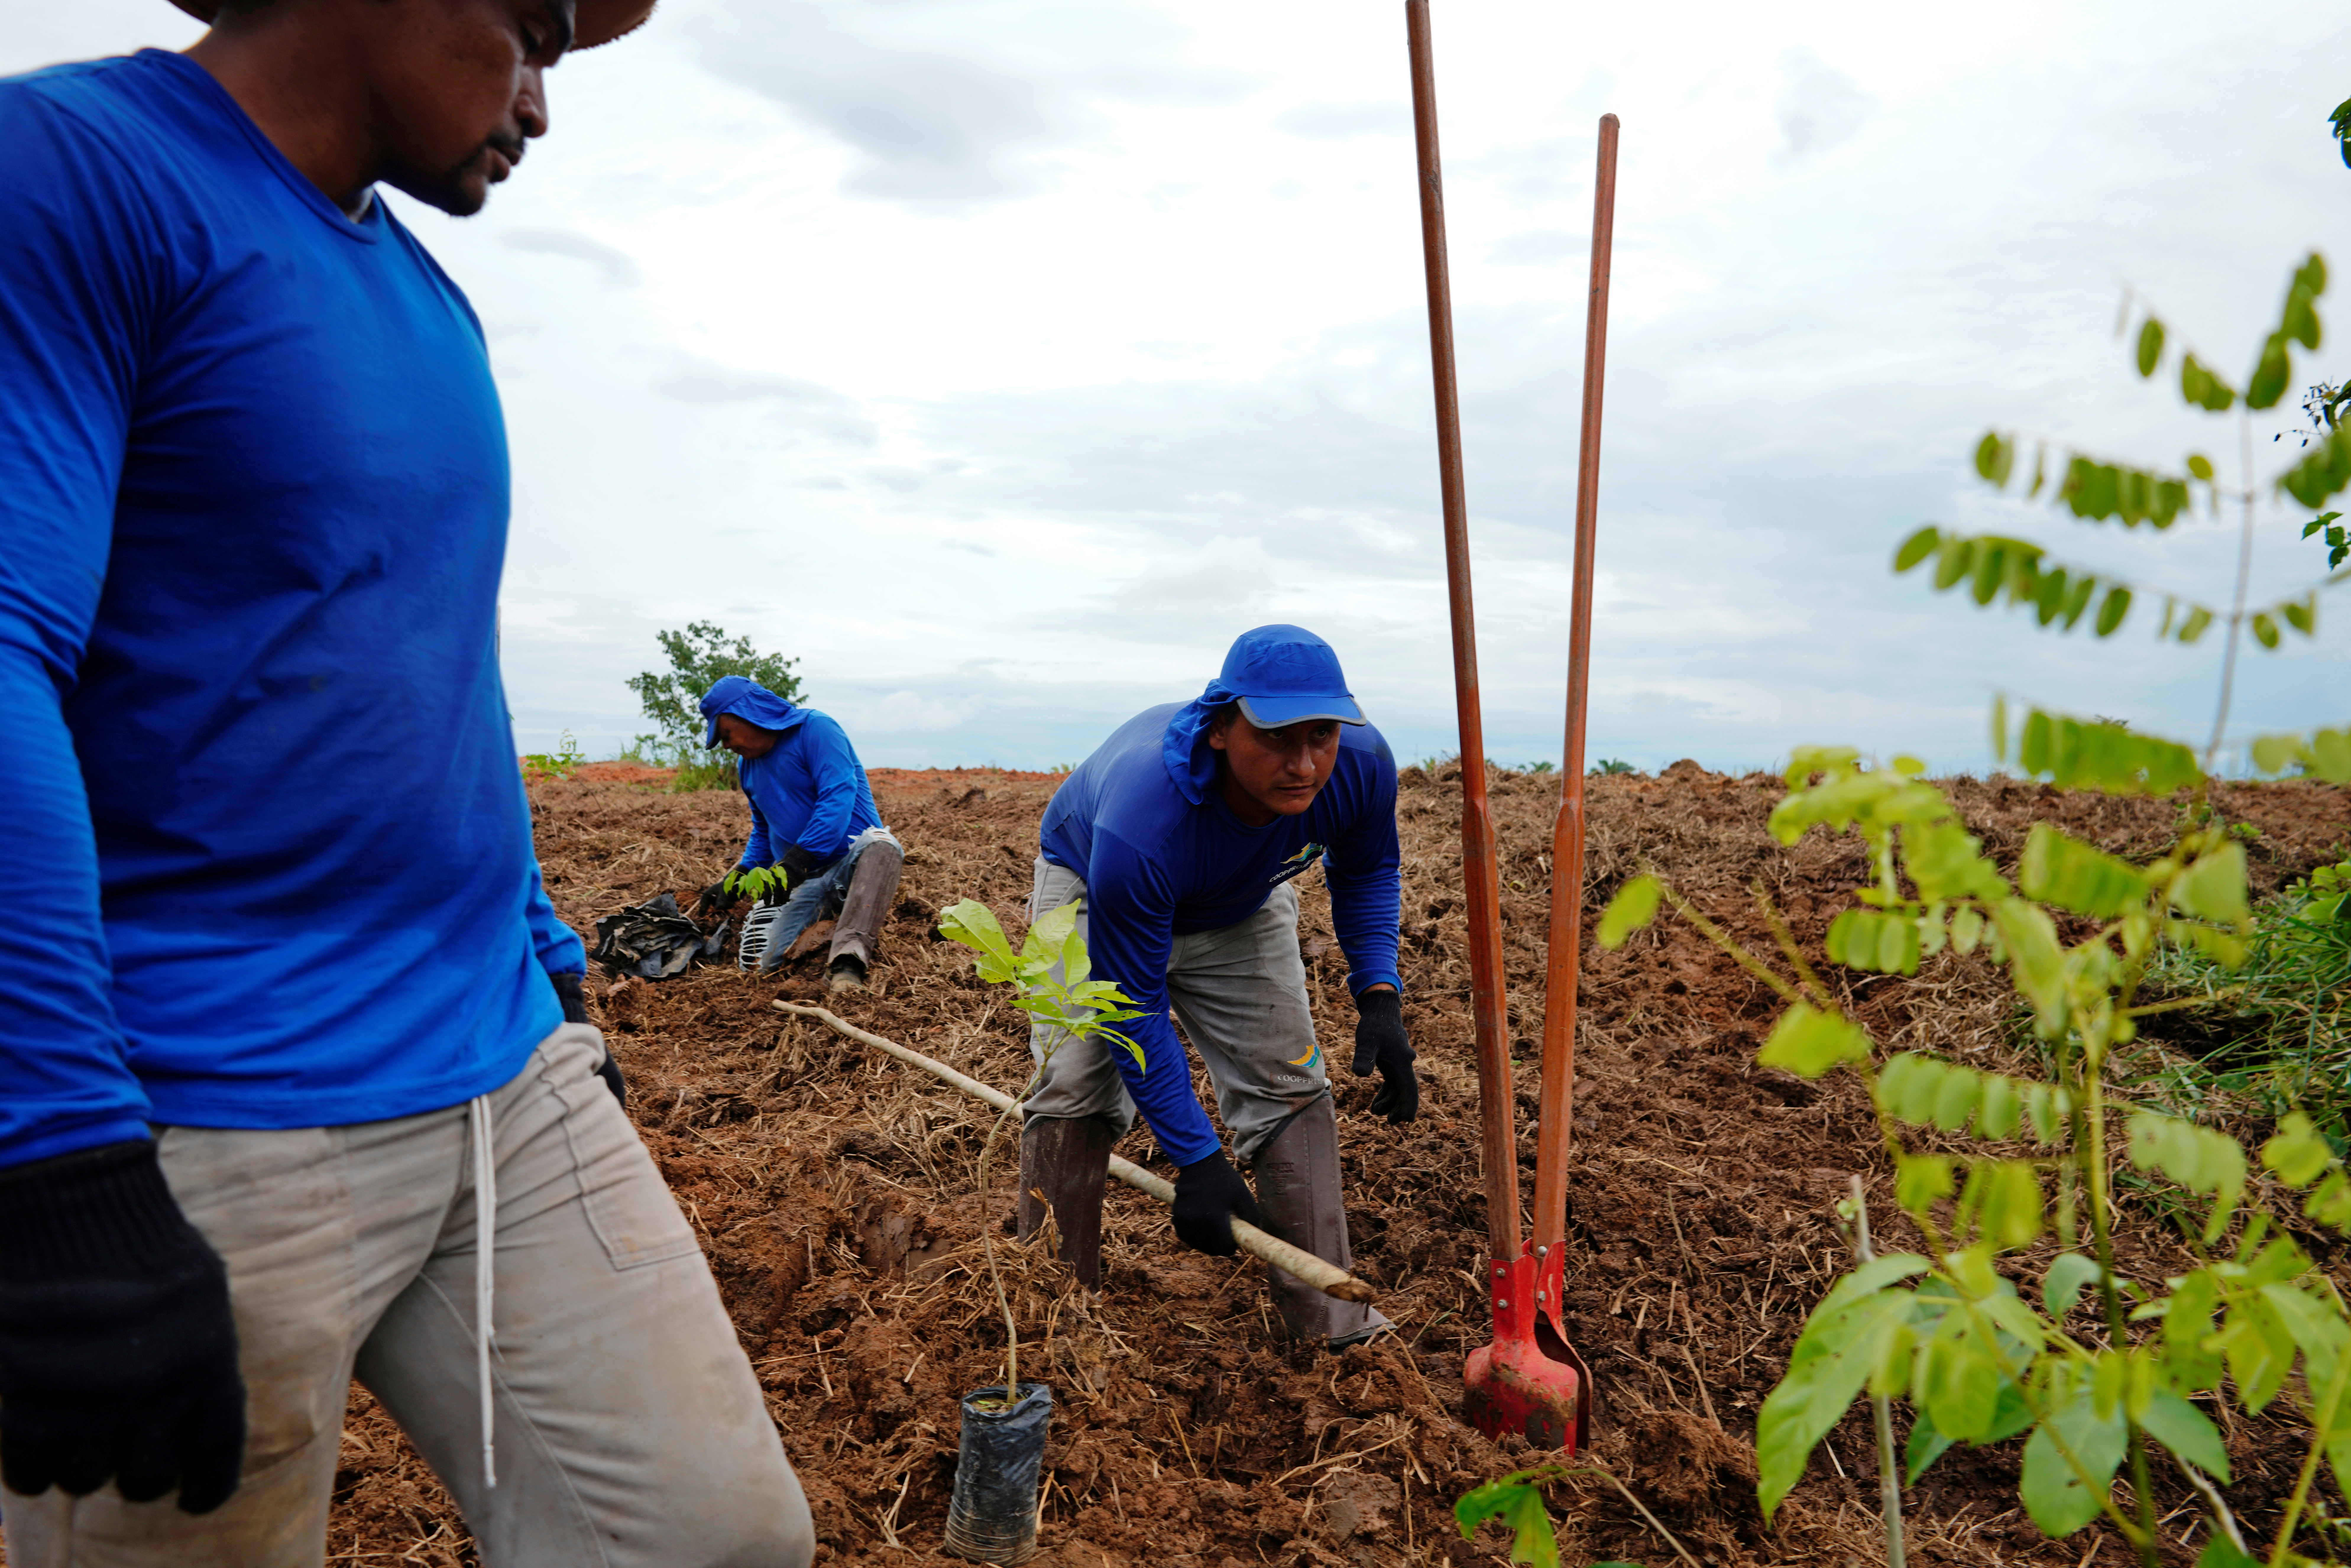 Farmers plant trees during a reforestation project in Nova Mutum, Brazil